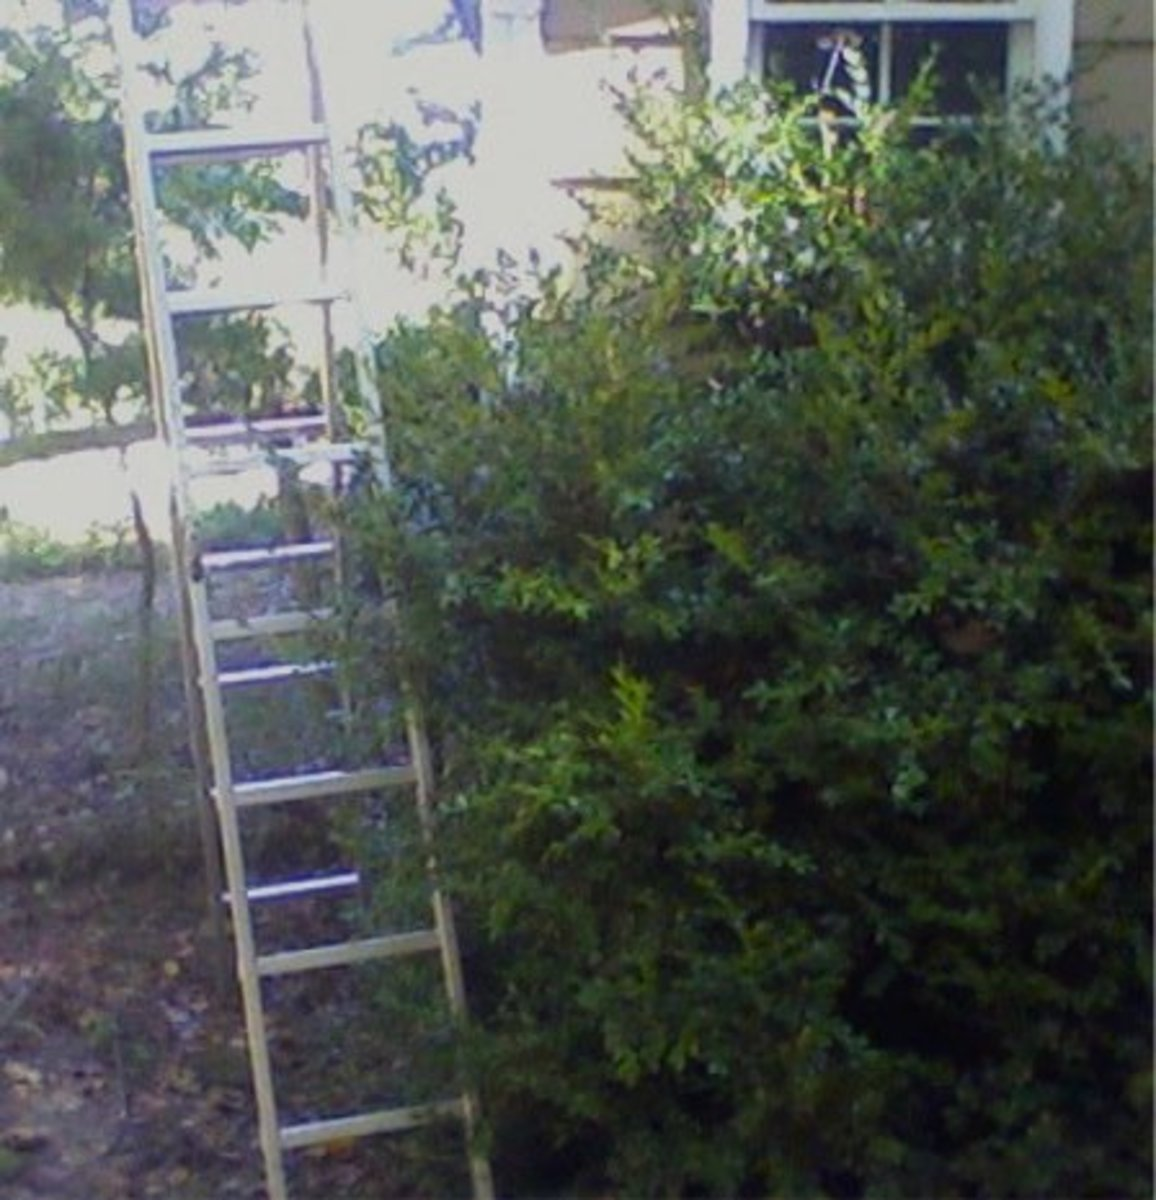 Ladder--WRONG!